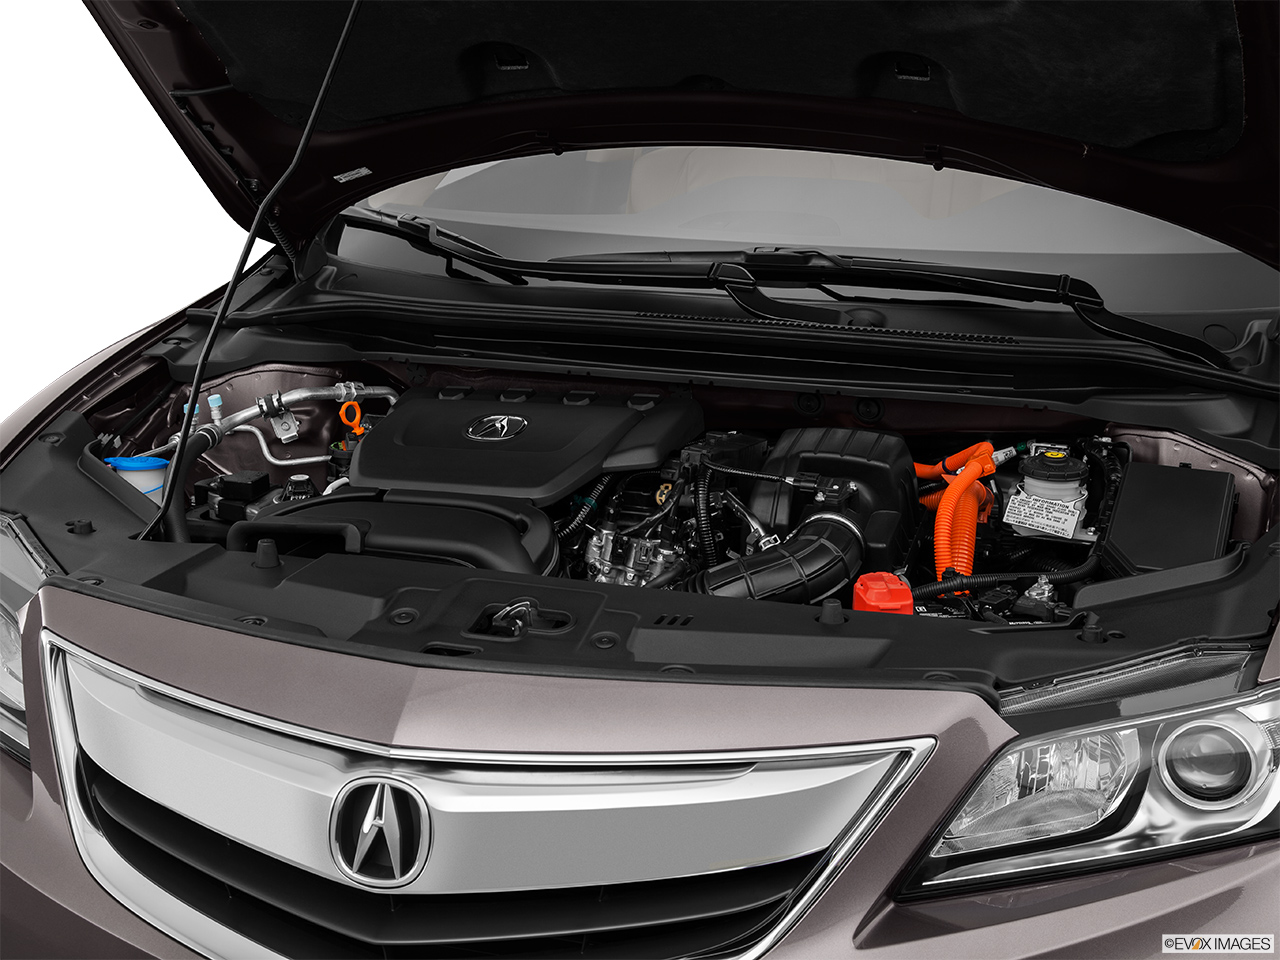 2014 Acura ILX Hybrid Base Engine.